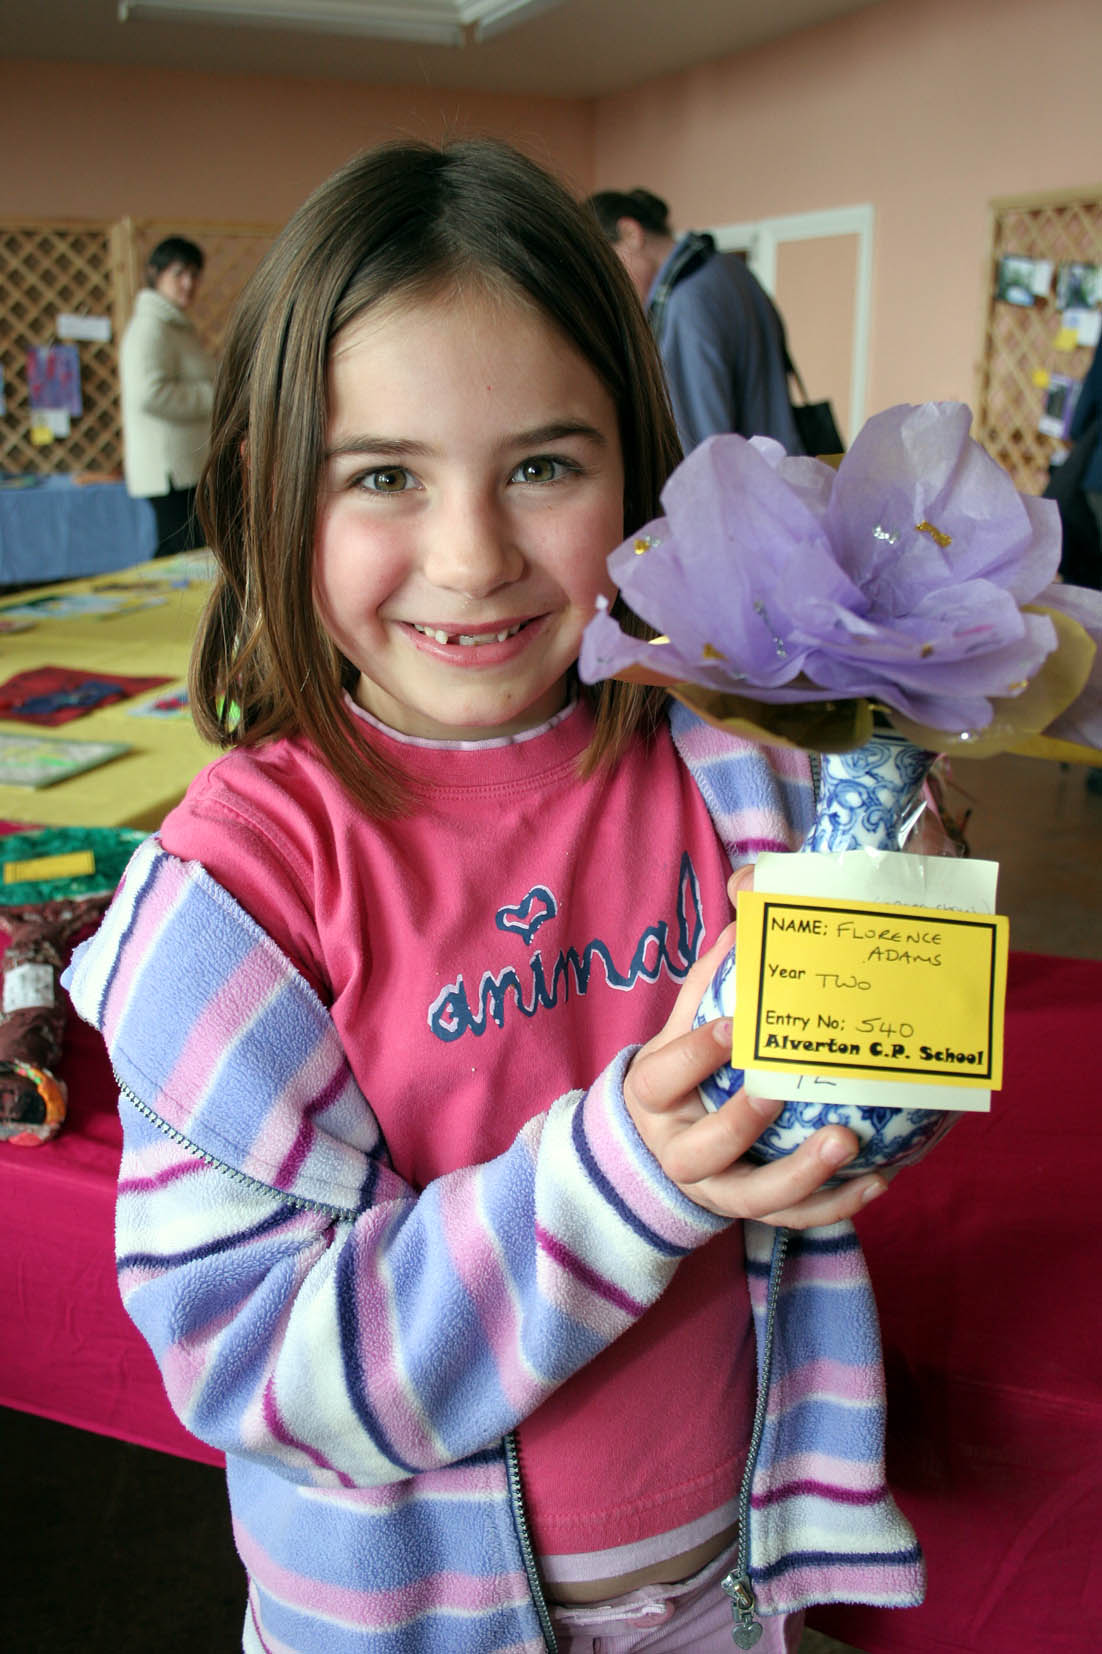 The 82nd West Cornwall Spring Show. Proud as punch. 7 year old Flo Adams from Alverton School with her Flower in a Vase. Pic by CIOSP For Fletch